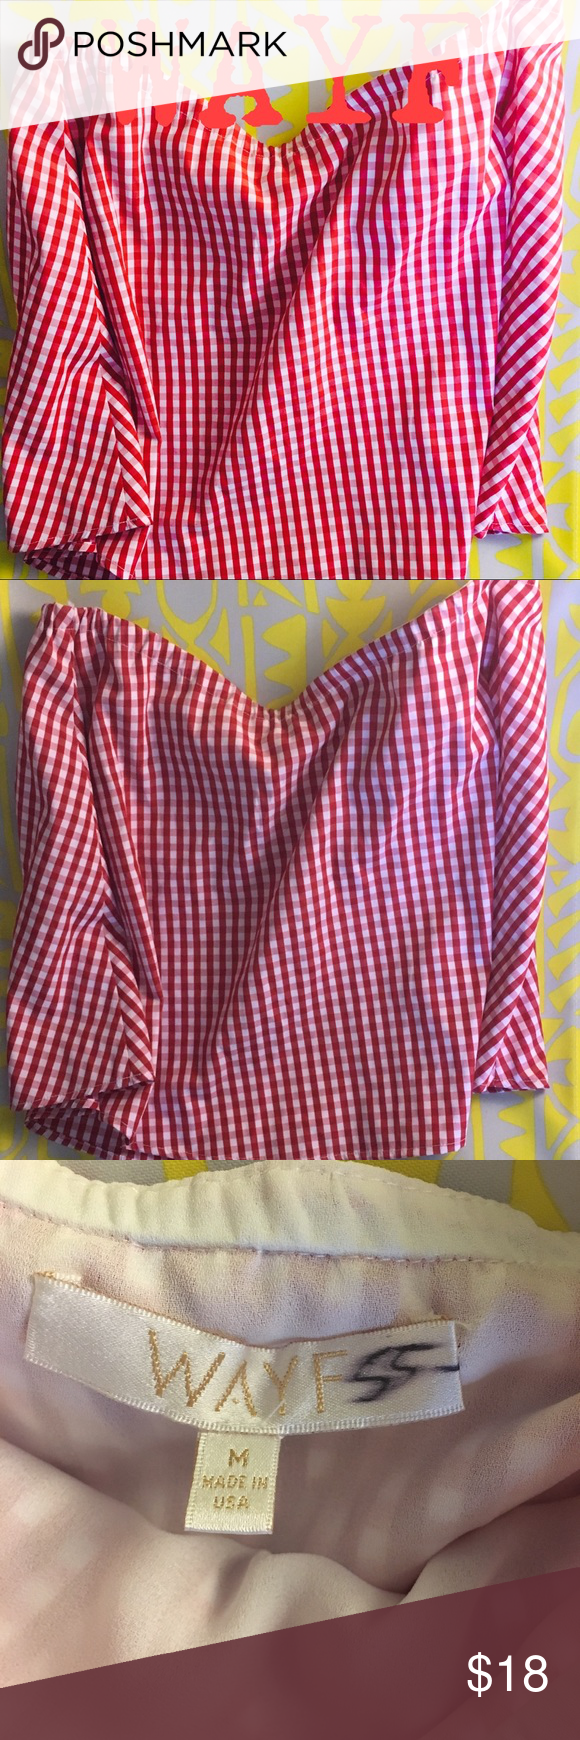 fa3aadc2c12 WAYF Gingham Red   White Tube Top Size M Super trendy red and white  checkered gingham tube top. Size Medium. Hits just at the waist.